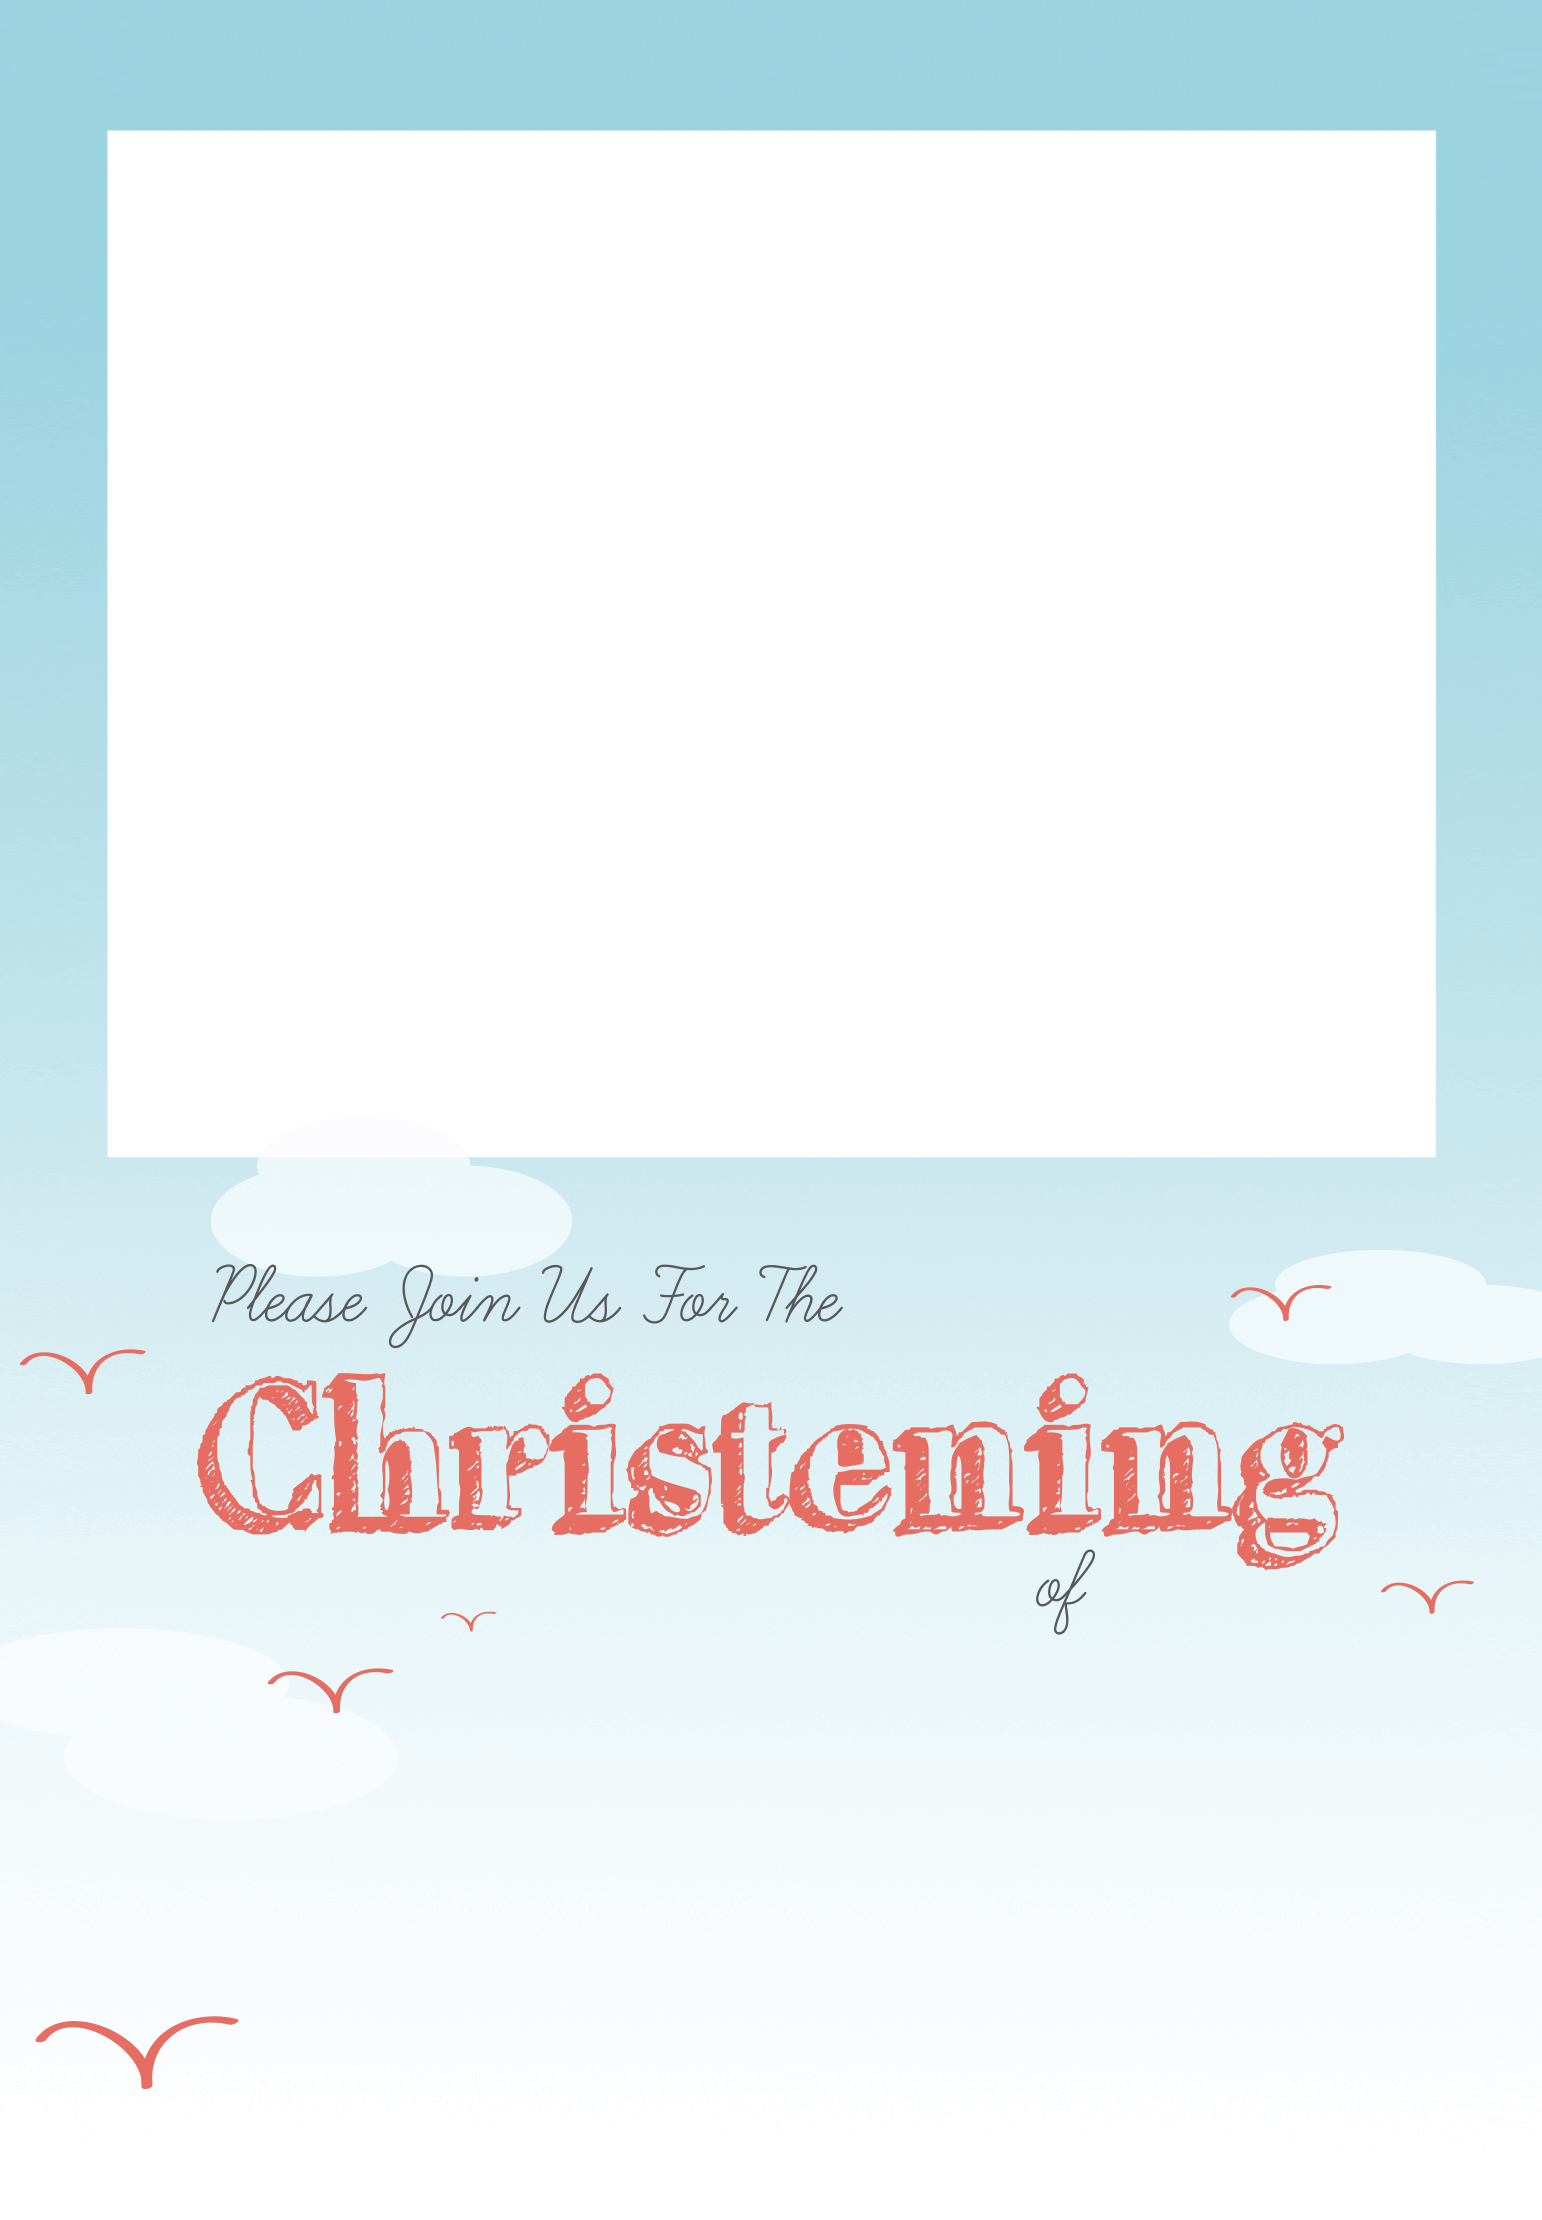 All Smiles Baptism Christening Invitation Template Free Greetings Is Invitation Layout Free Printable Invitations Templates Christening Invitations Boy